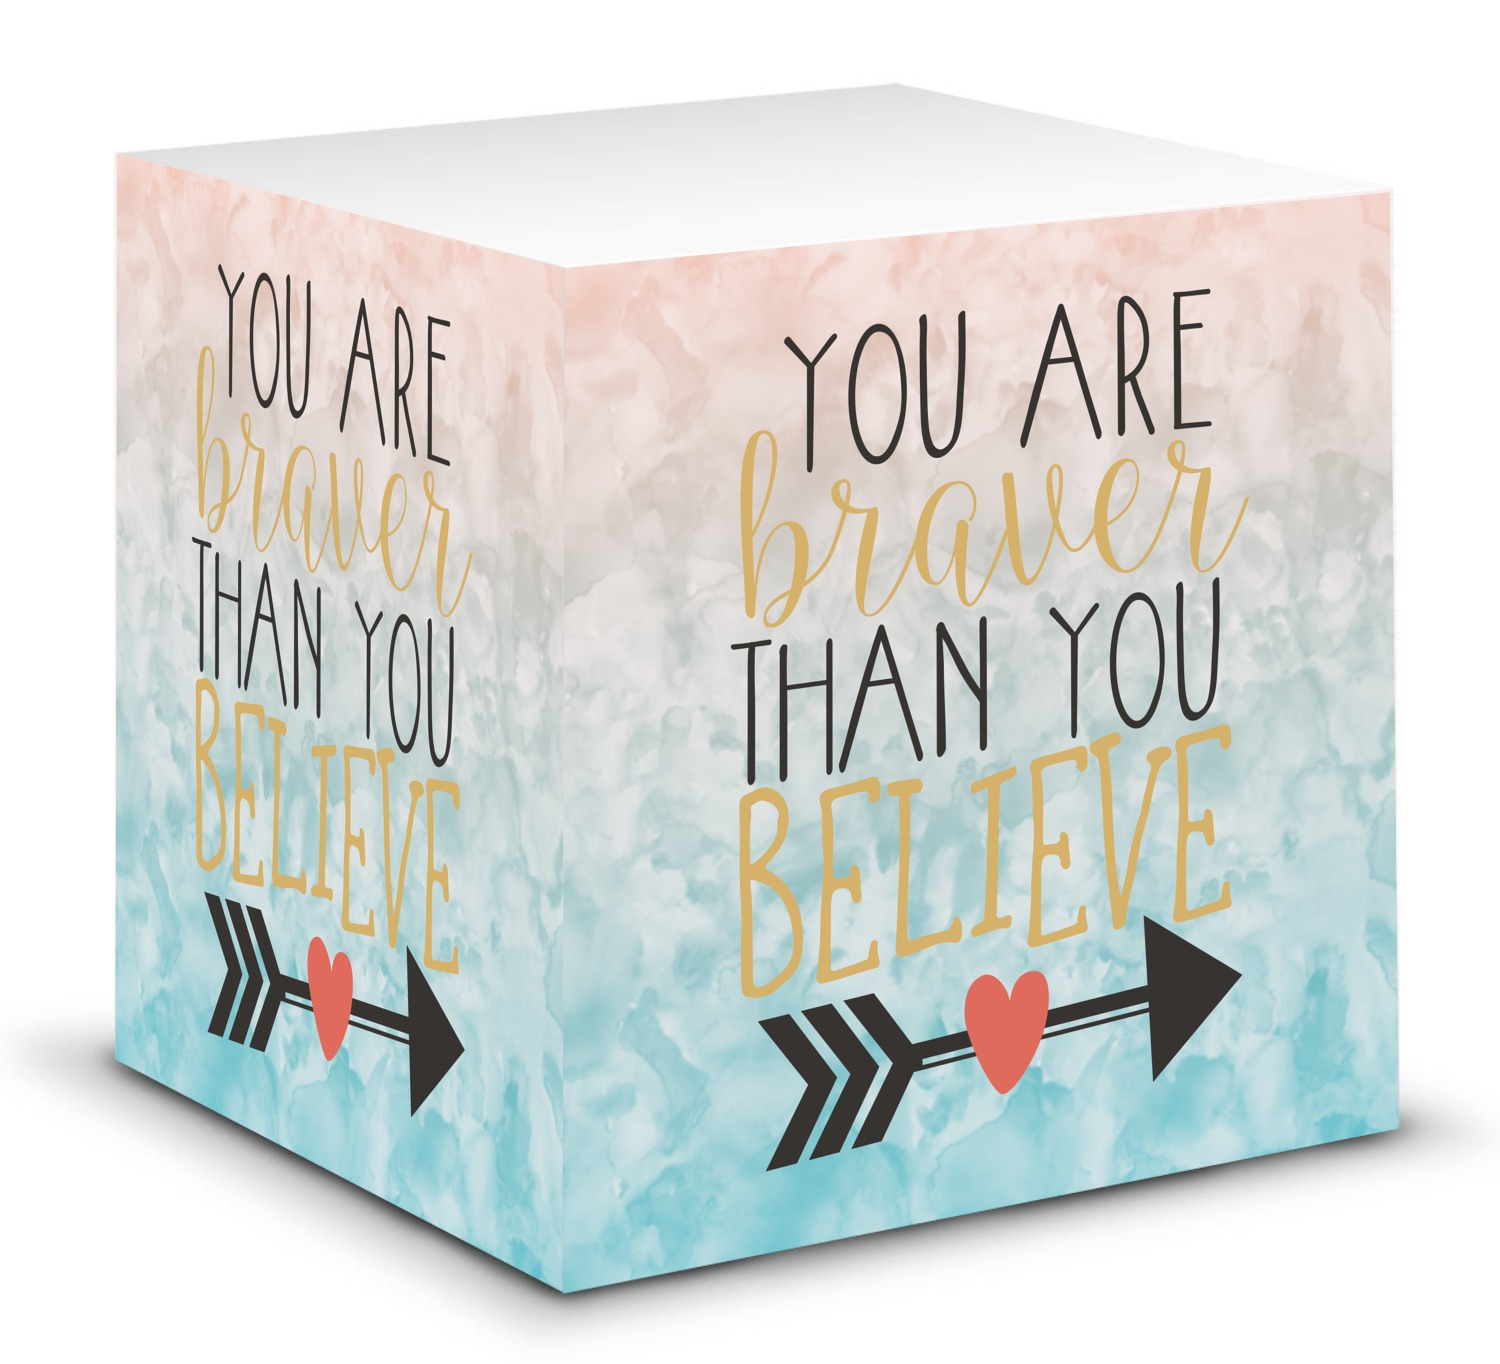 Quotes On Sticky Notes: Inspirational Quotes Sticky Note Cube (Personalized